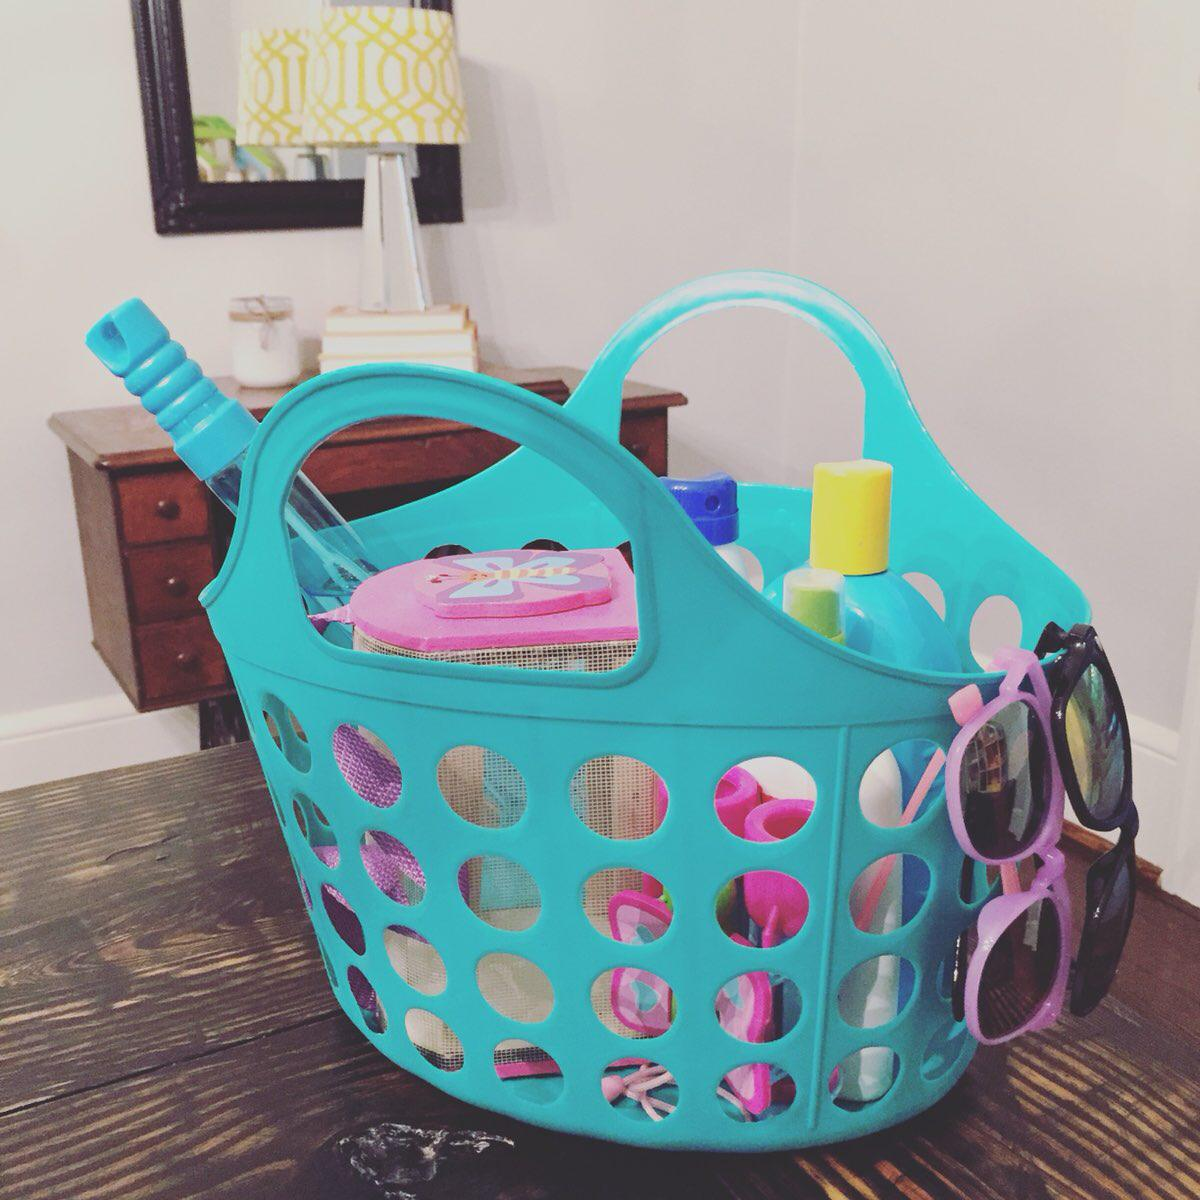 organized basket - organization tips for teacher moms